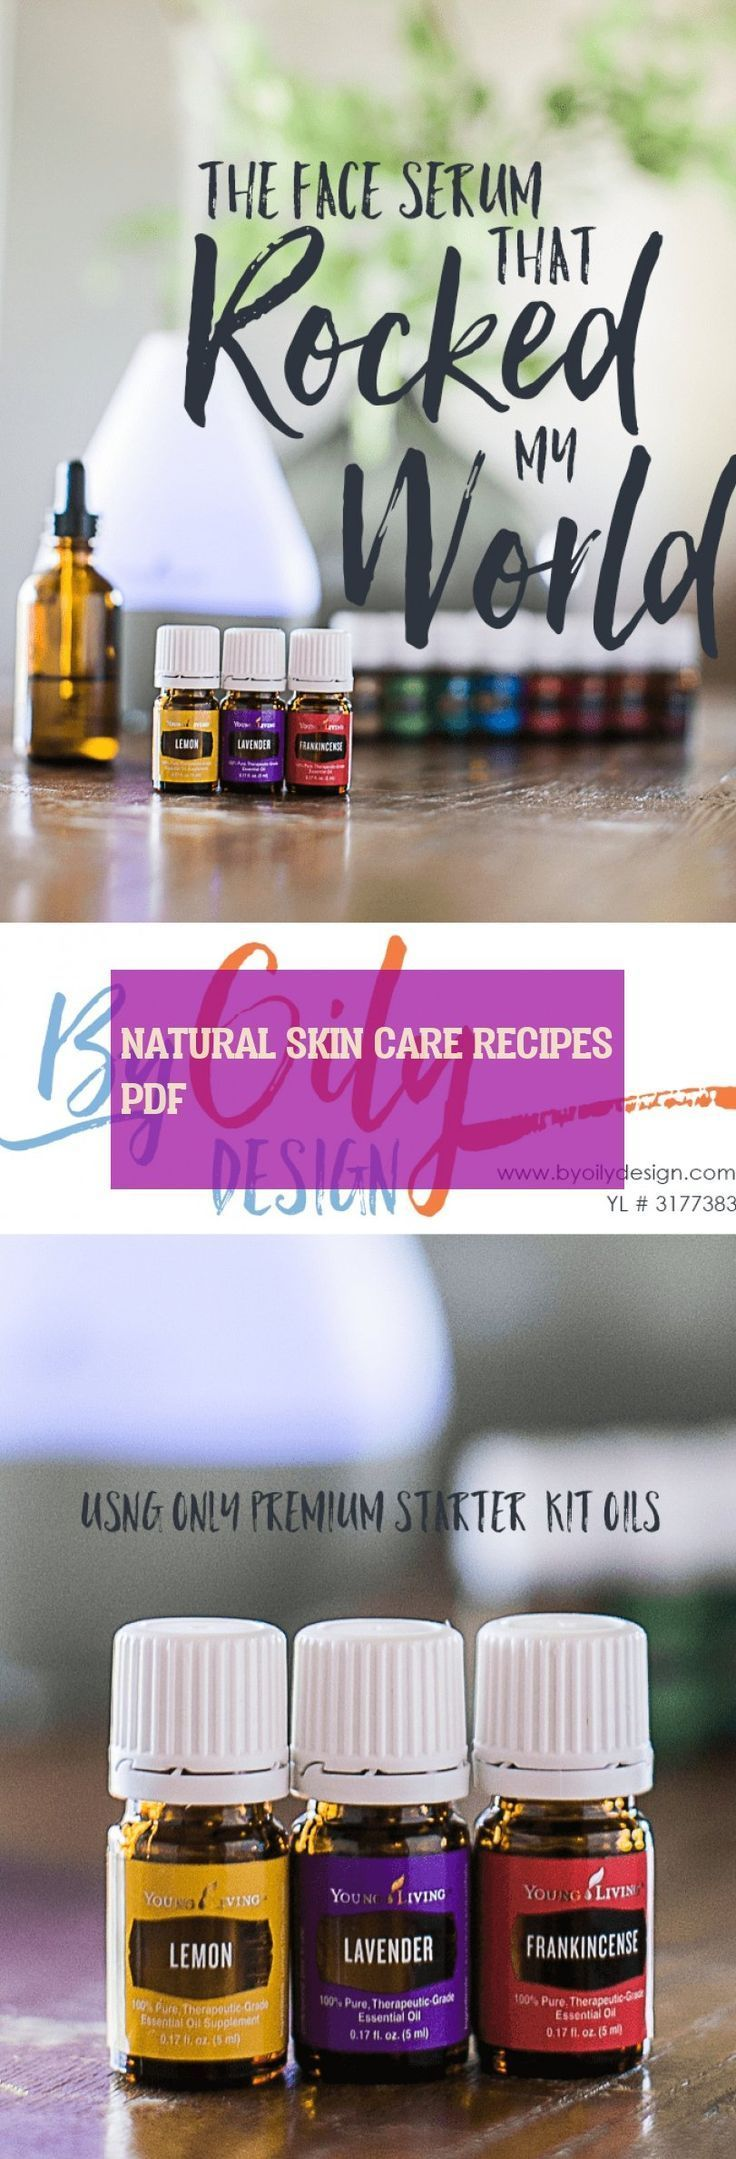 natural skin care recipes pdf - natural skin care recipes pdf - #Care #Haut ...  -  Hautpflege-Rezepte